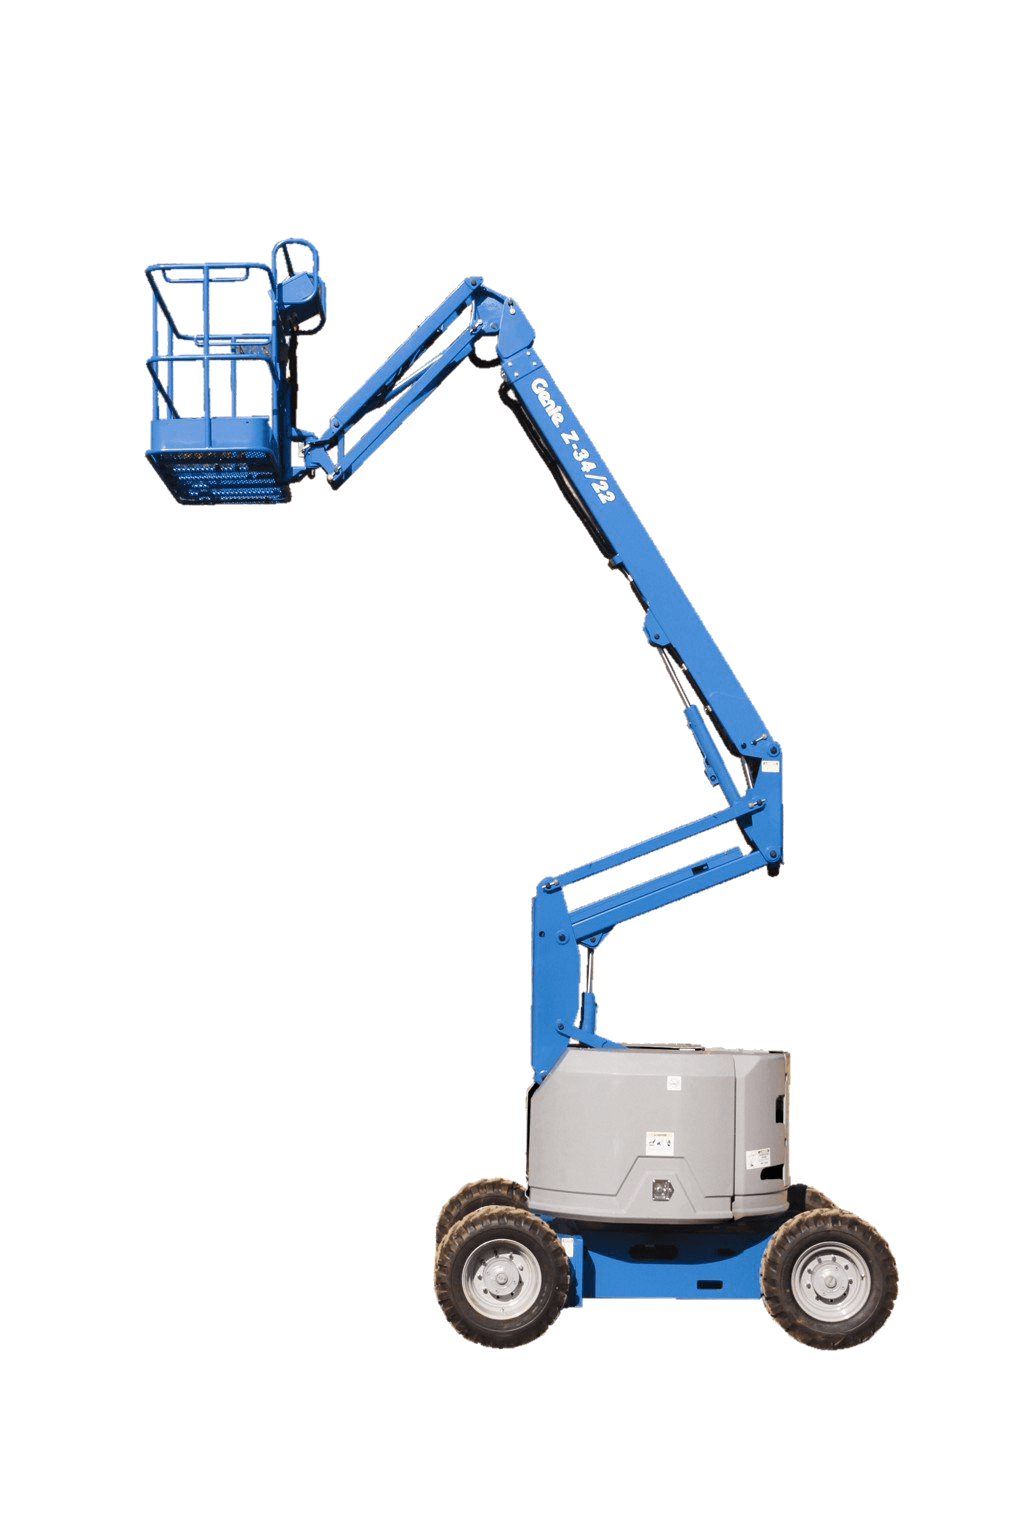 Z-34/22 ic - 10m knuckle boom lift for hire in Gold Coast, Ballina and beyond